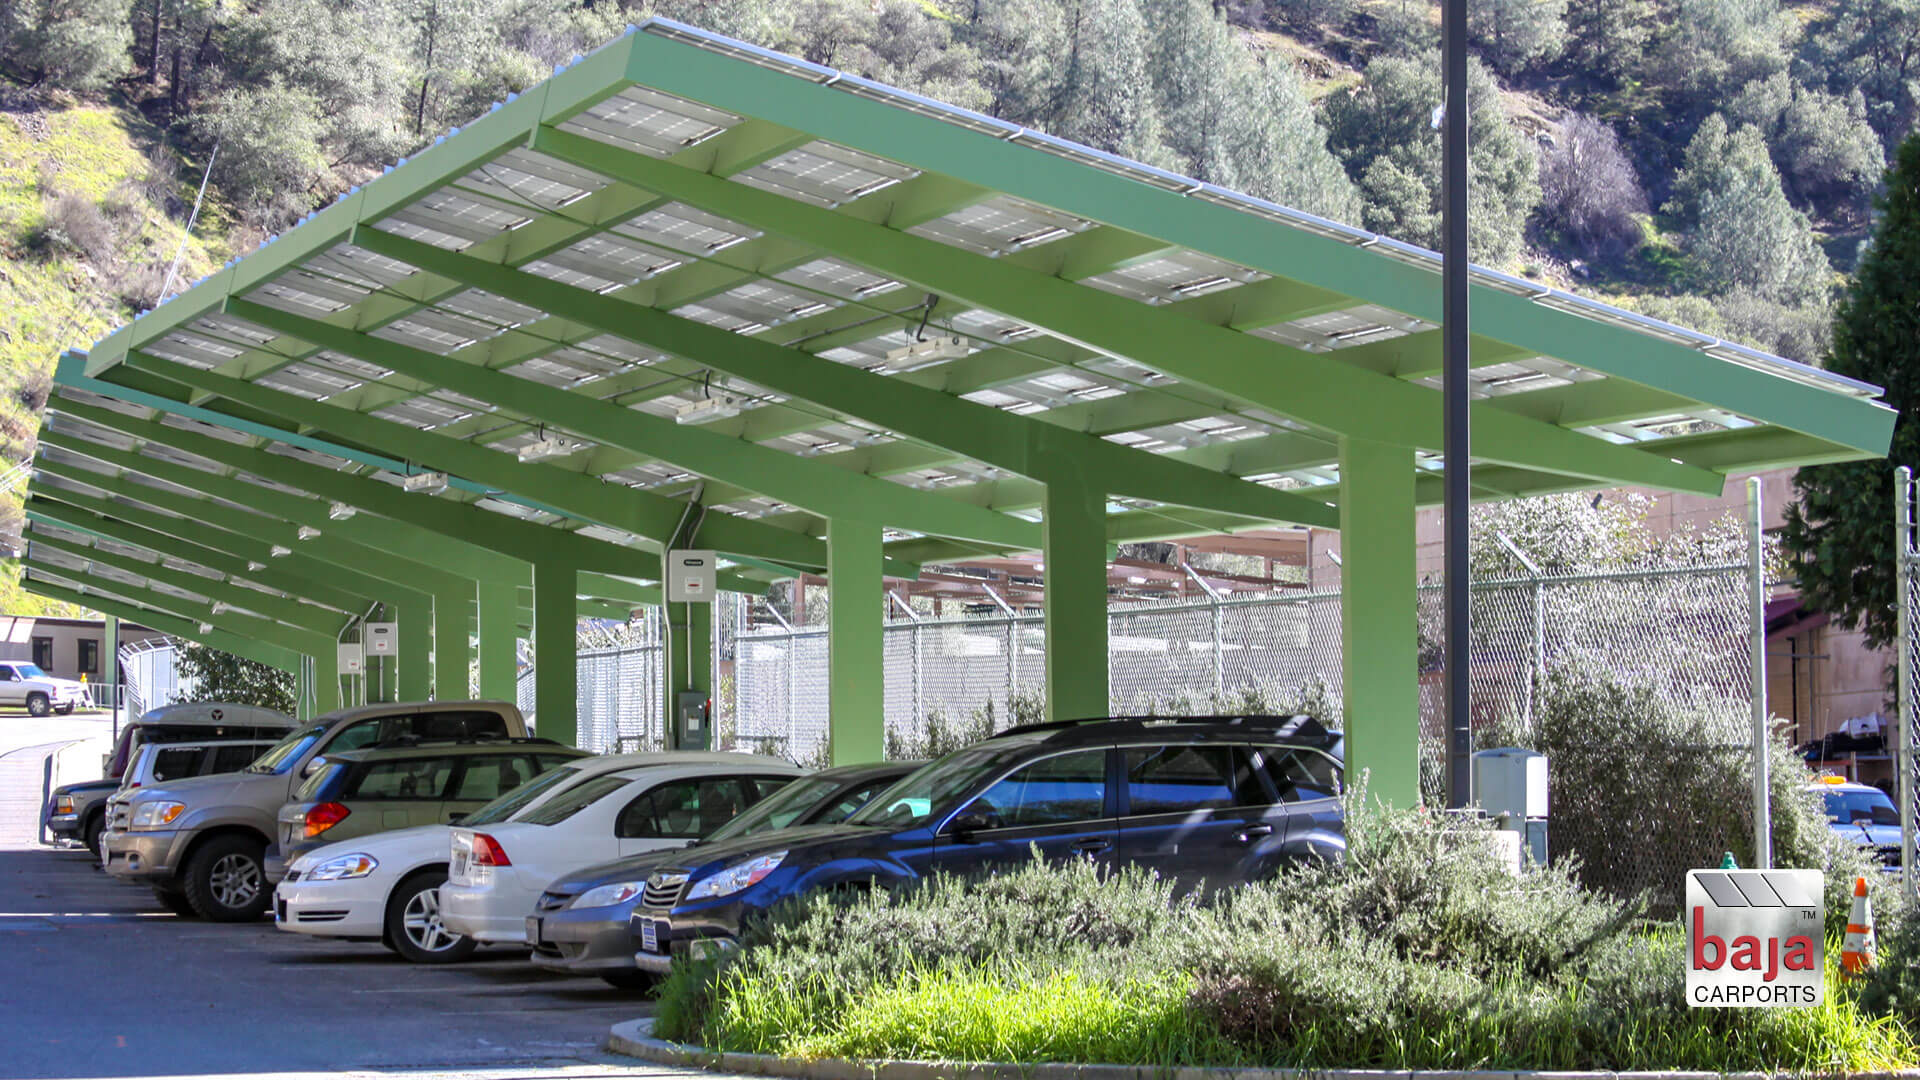 yosemite administration empolyees park under solar support systems